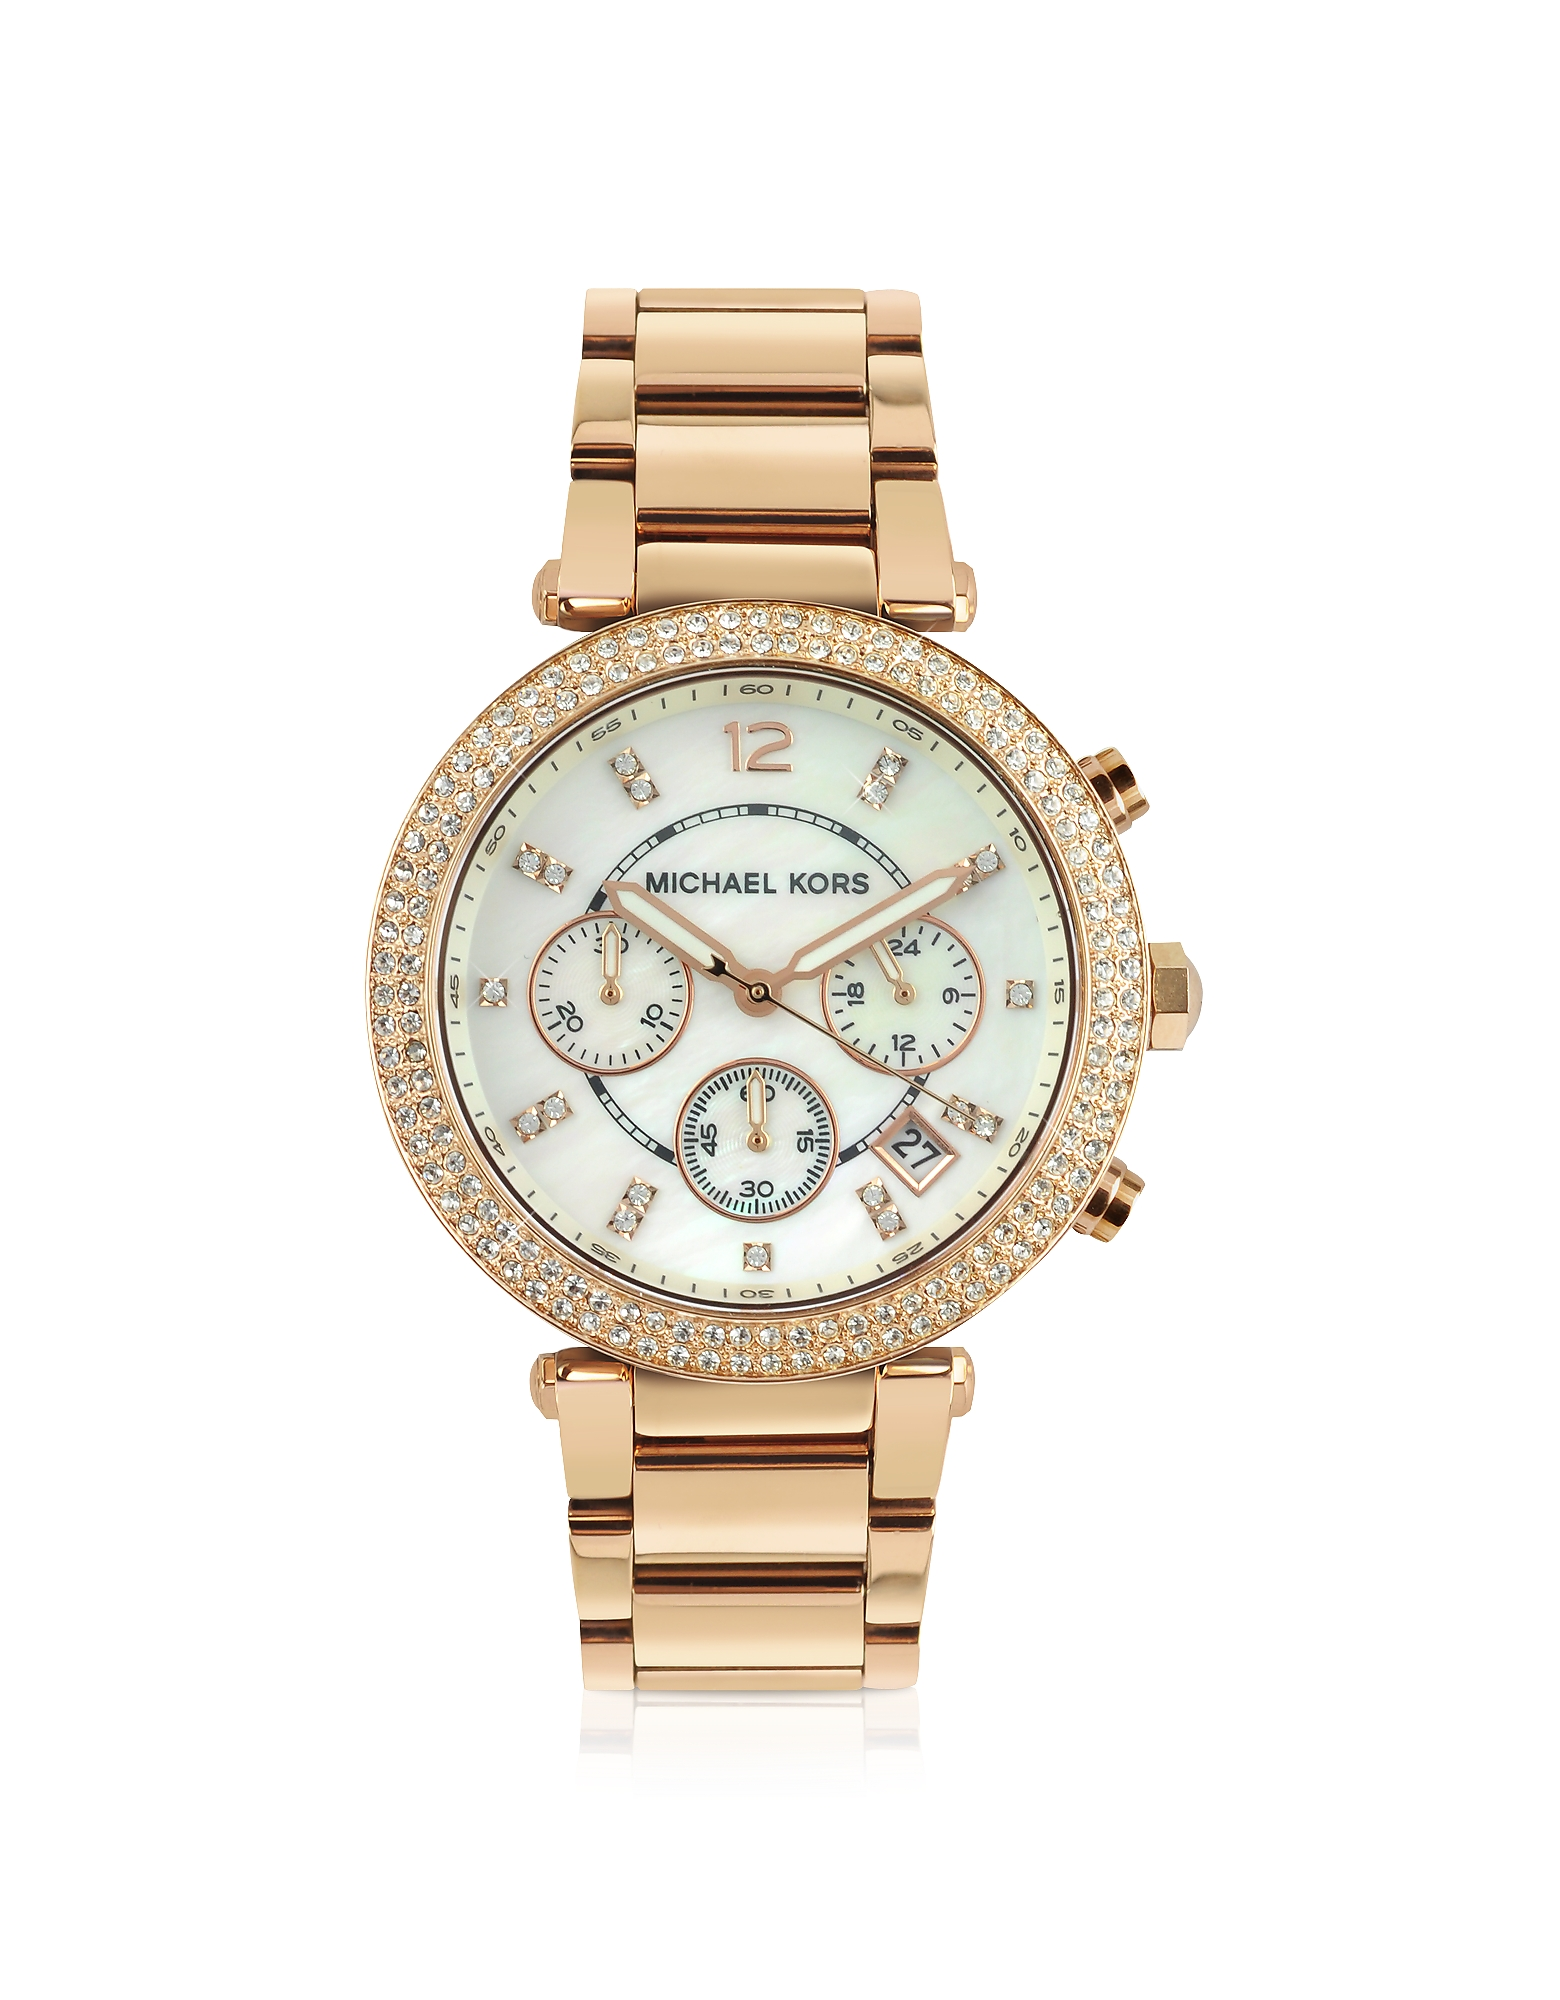 Michael Kors Designer Women's Watches, Glitz-Top Chronograph Watch